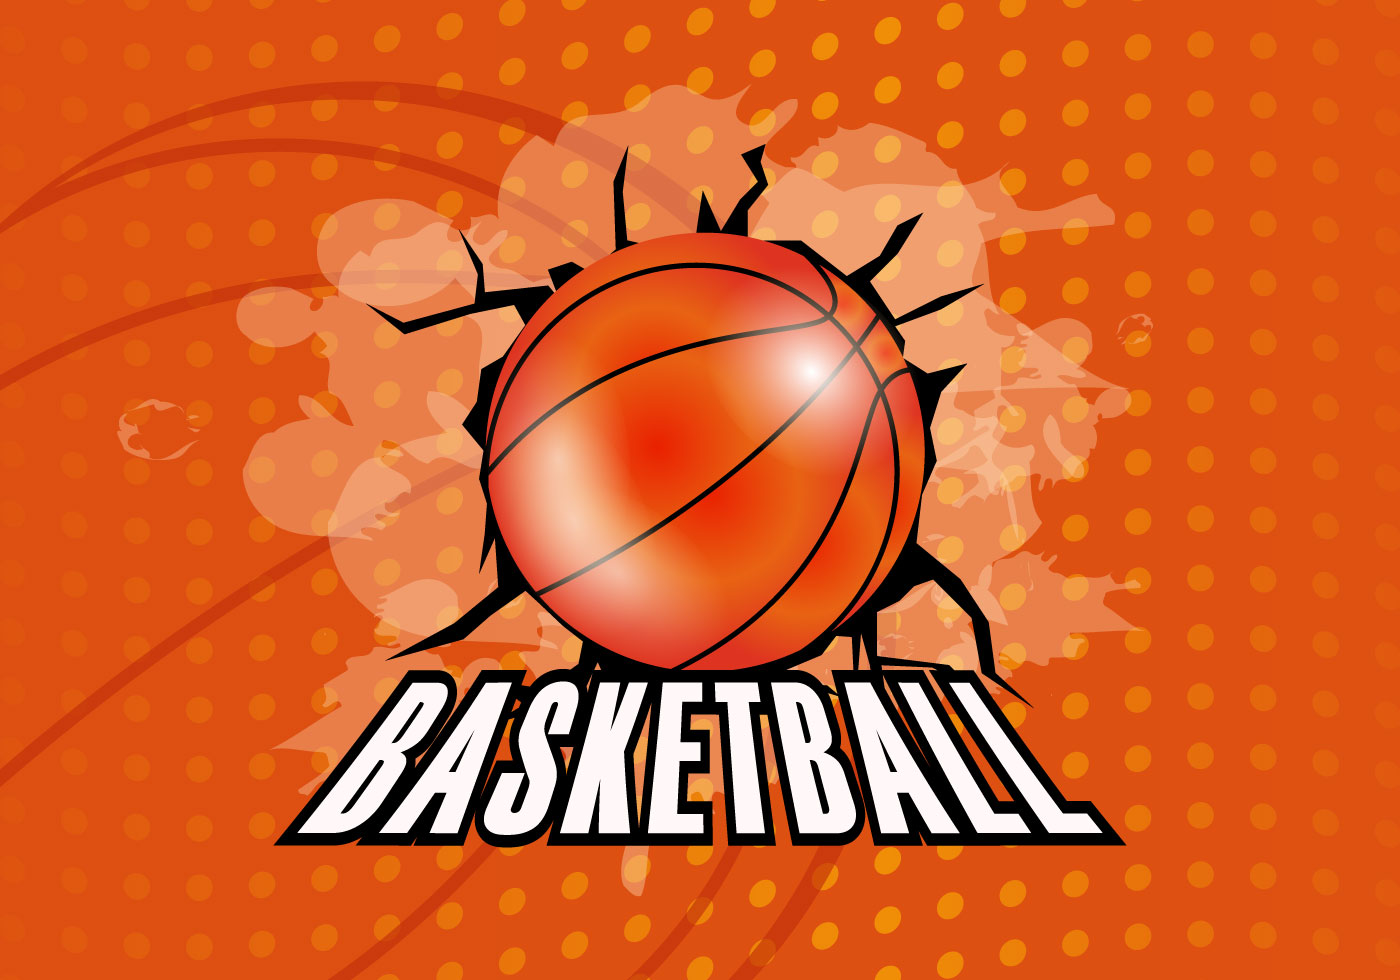 Basketball Texture Background - Download Free Vectors ...